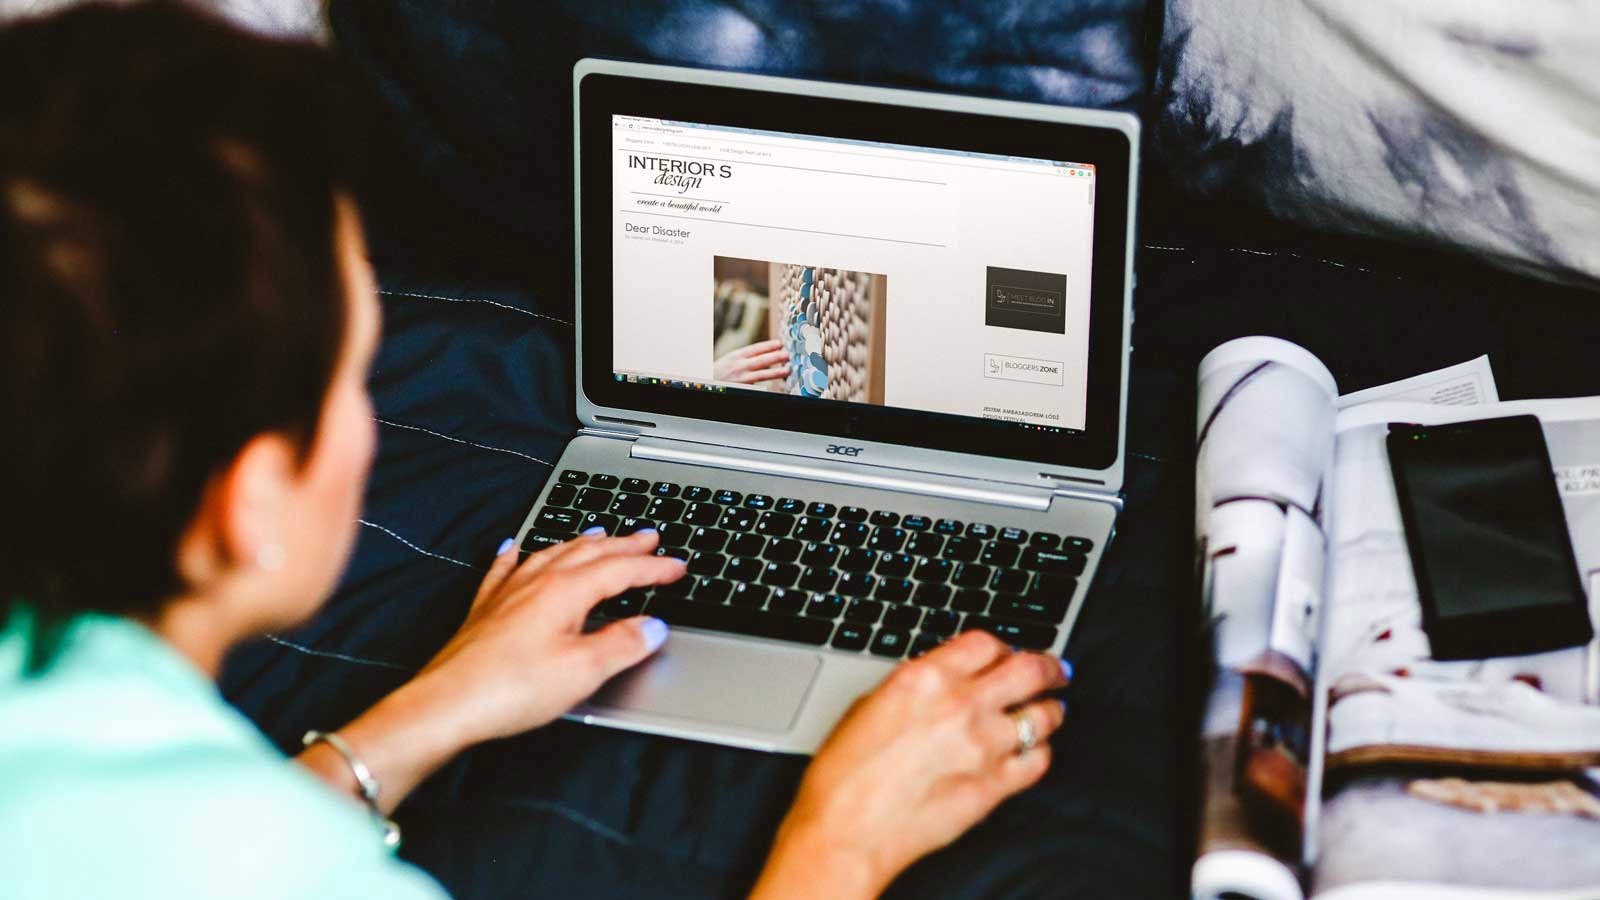 Original blog articles can be a key component of an online marketing solutions strategy